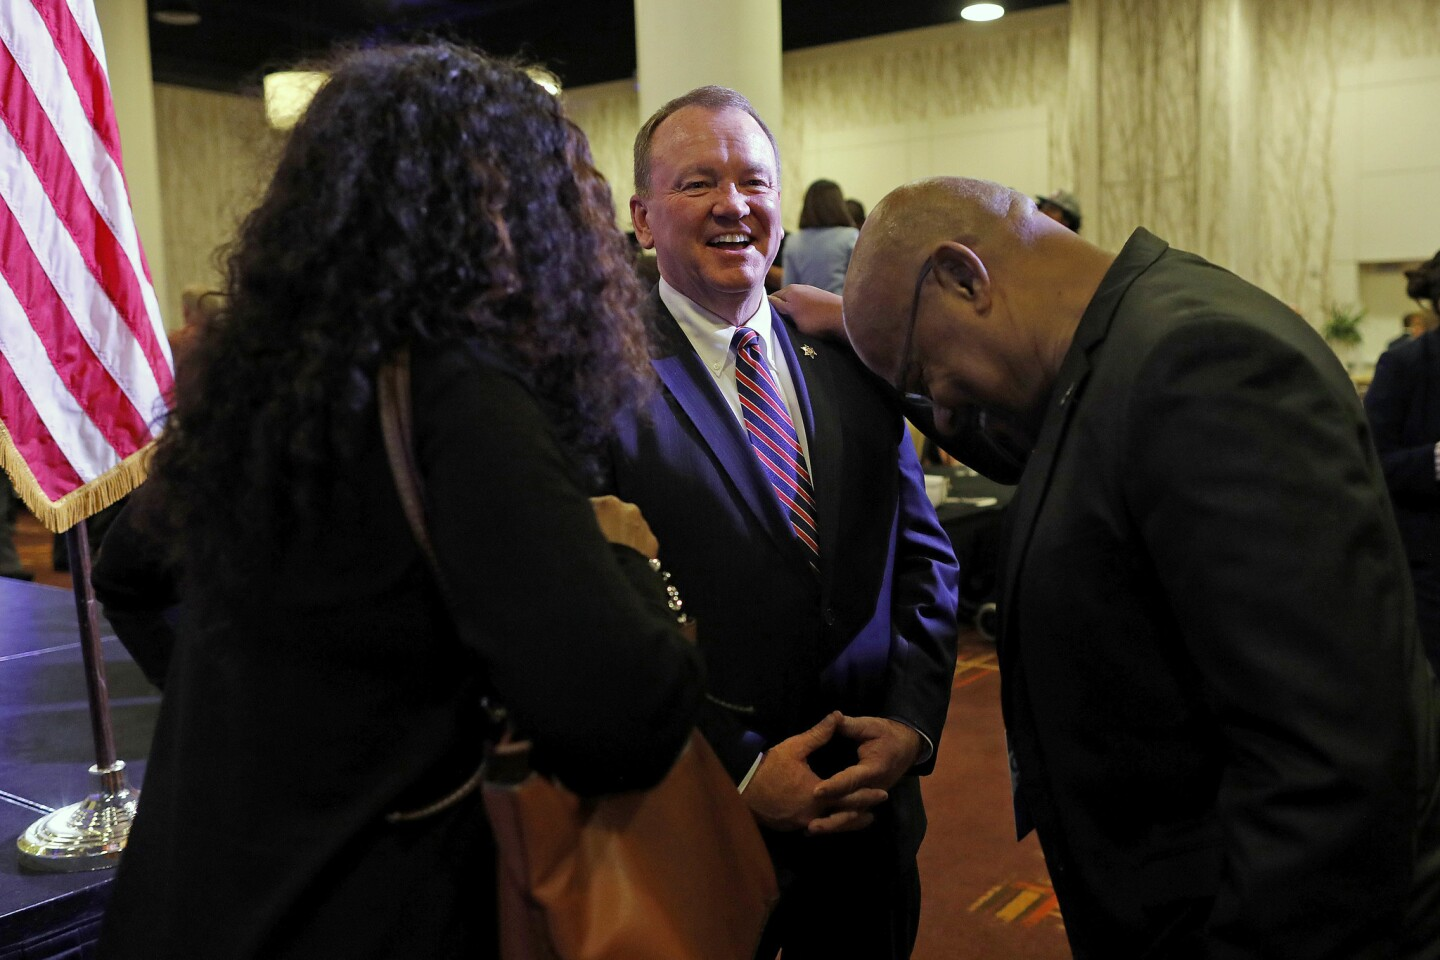 Sheriff Jim McDonnell, center, enjoys a laugh with Kim Evans, left, of Signal Hill, and Jesse Johnson, of Los Angeles, on election night at the JW Marriott Los Angeles L.A. LIVE.